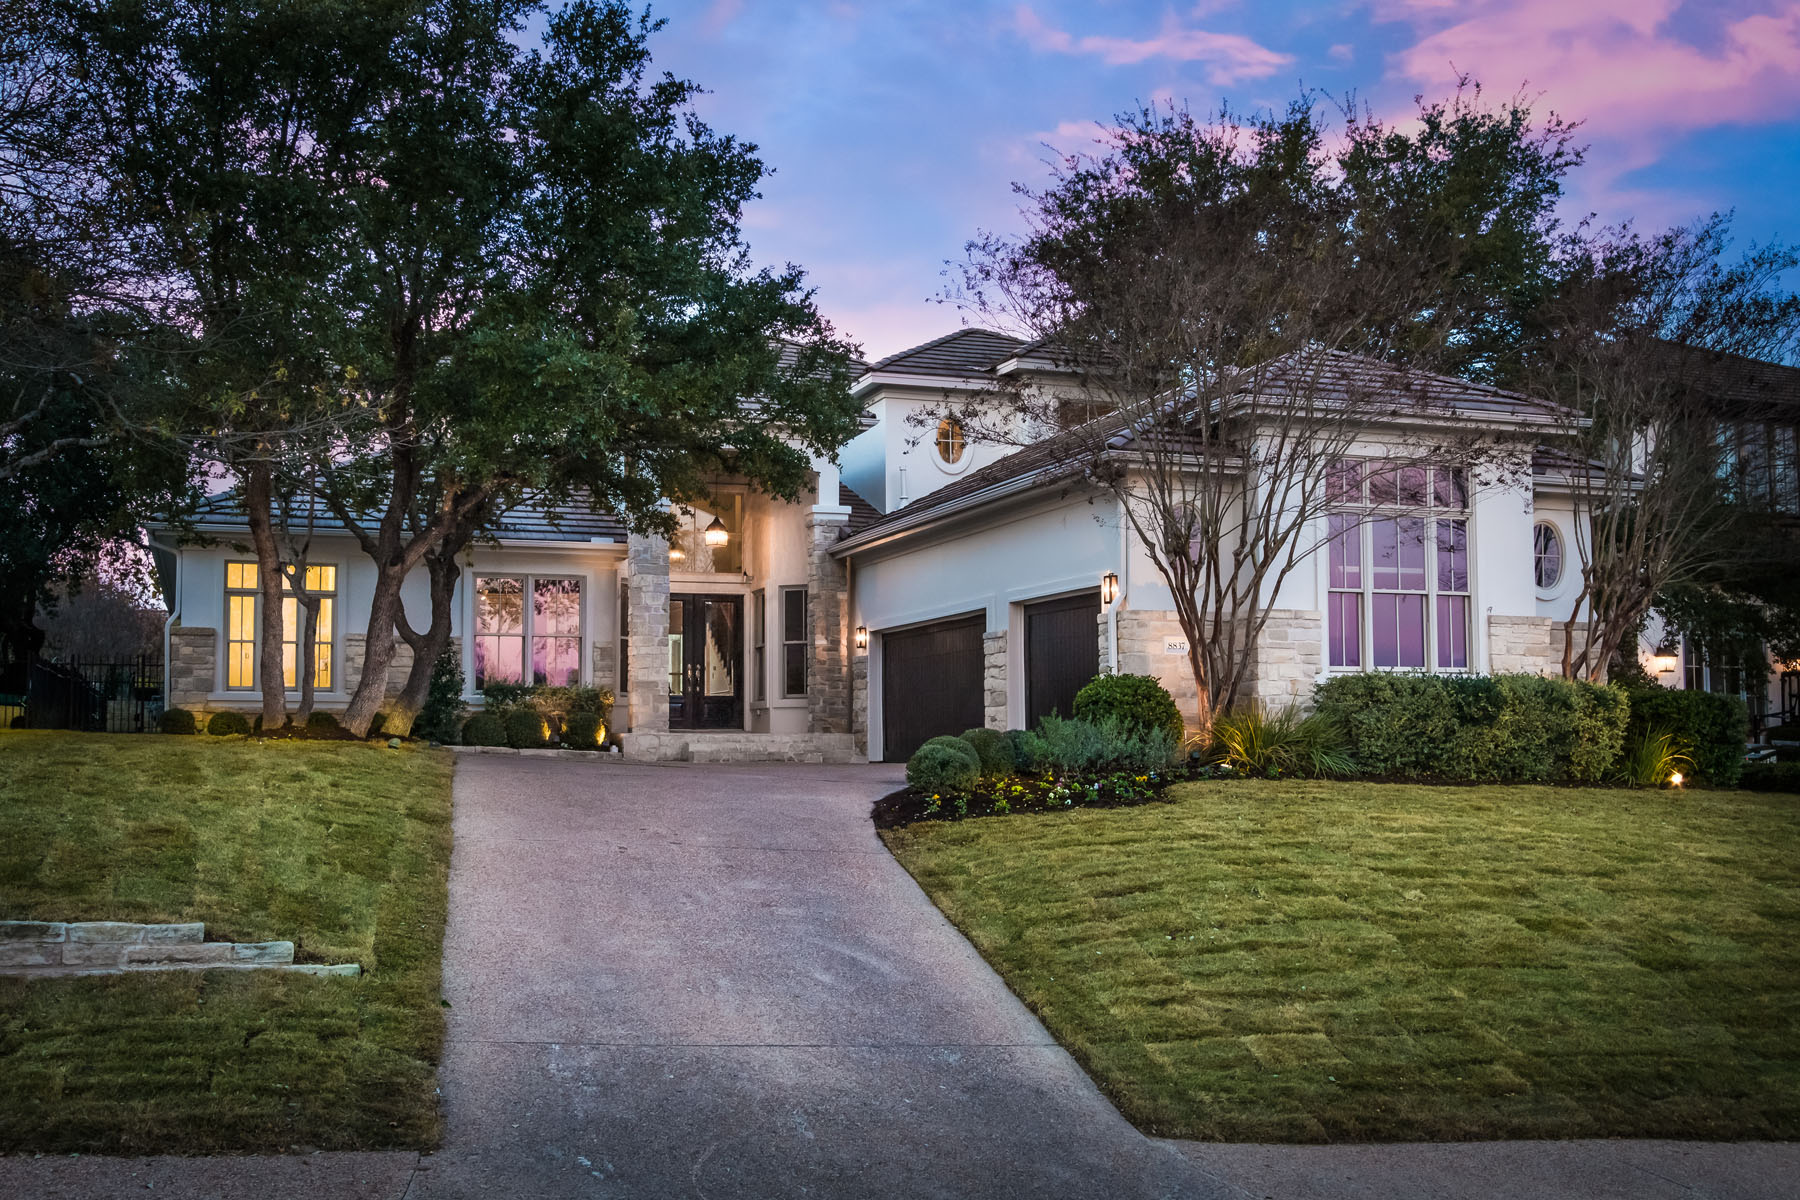 Single Family Home for Sale at Beautifully Remodeled with Clean Lines 8837 Chalk Knoll Dr Austin, Texas 78735 United States